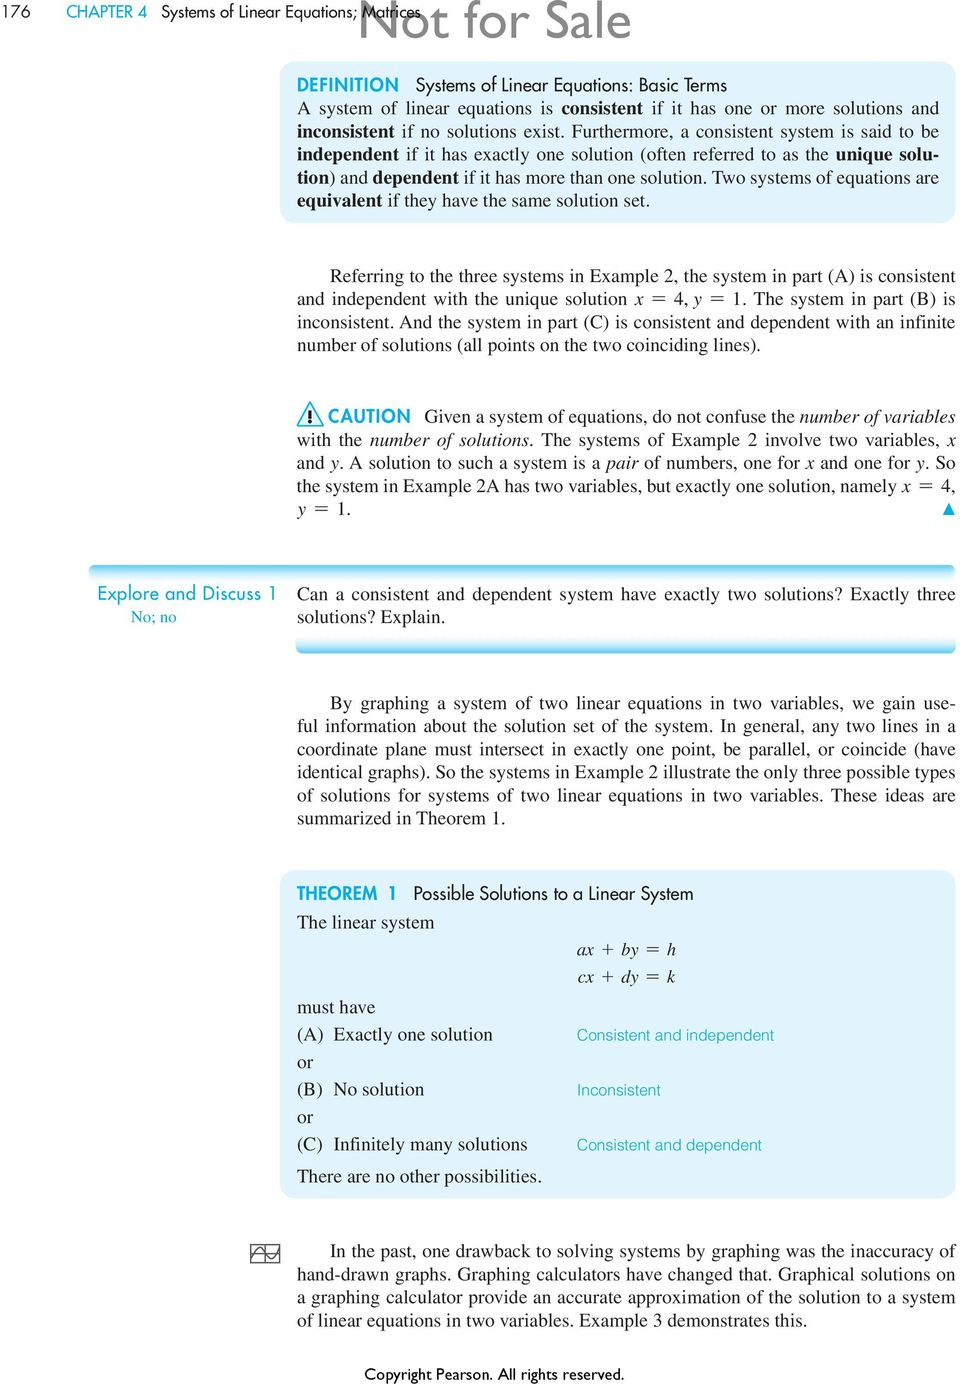 systems of linear equations; matrices - pdf